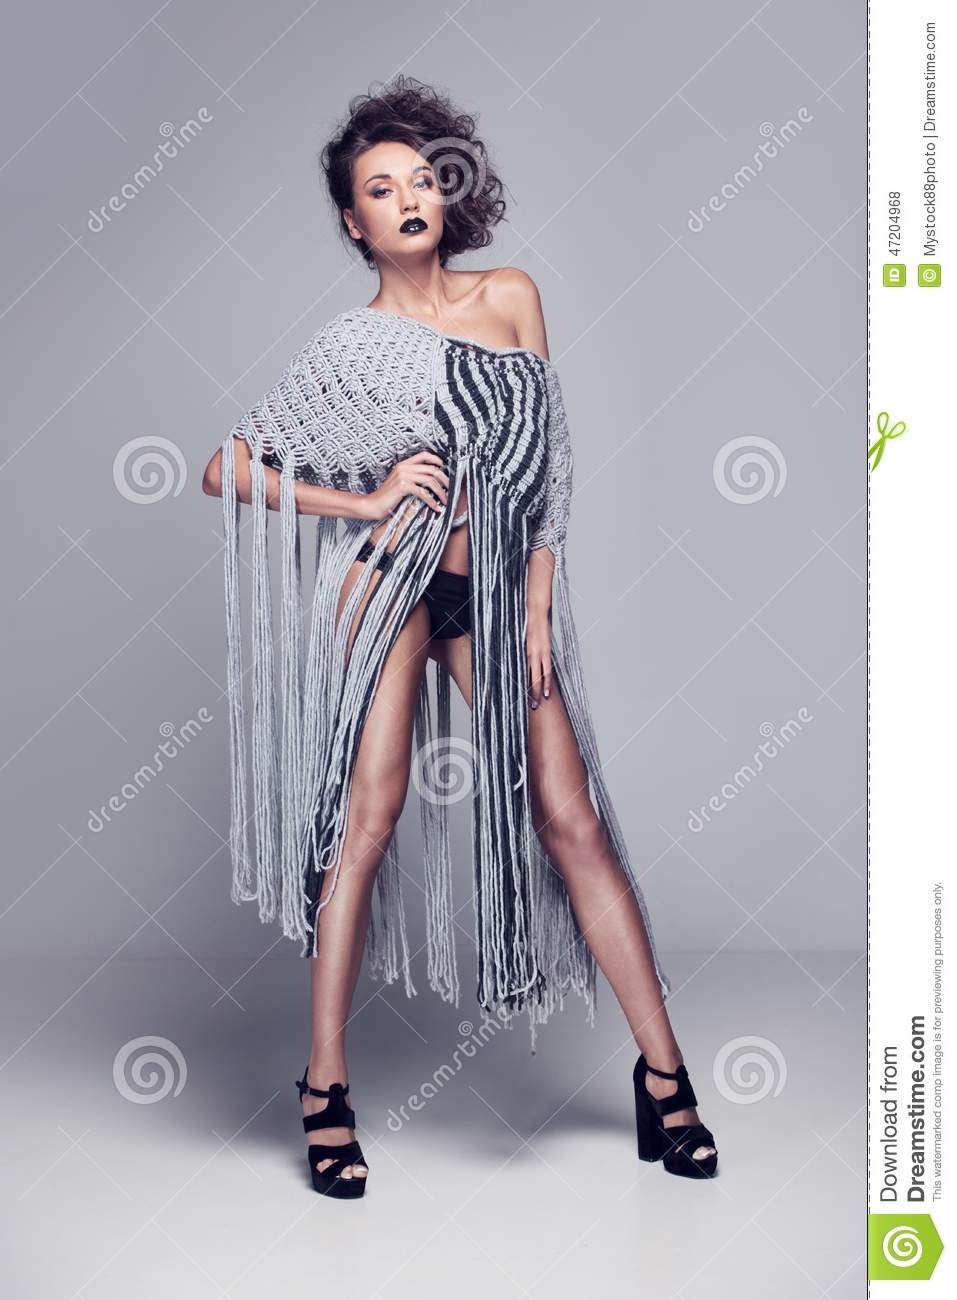 sweater Nude woman wearing